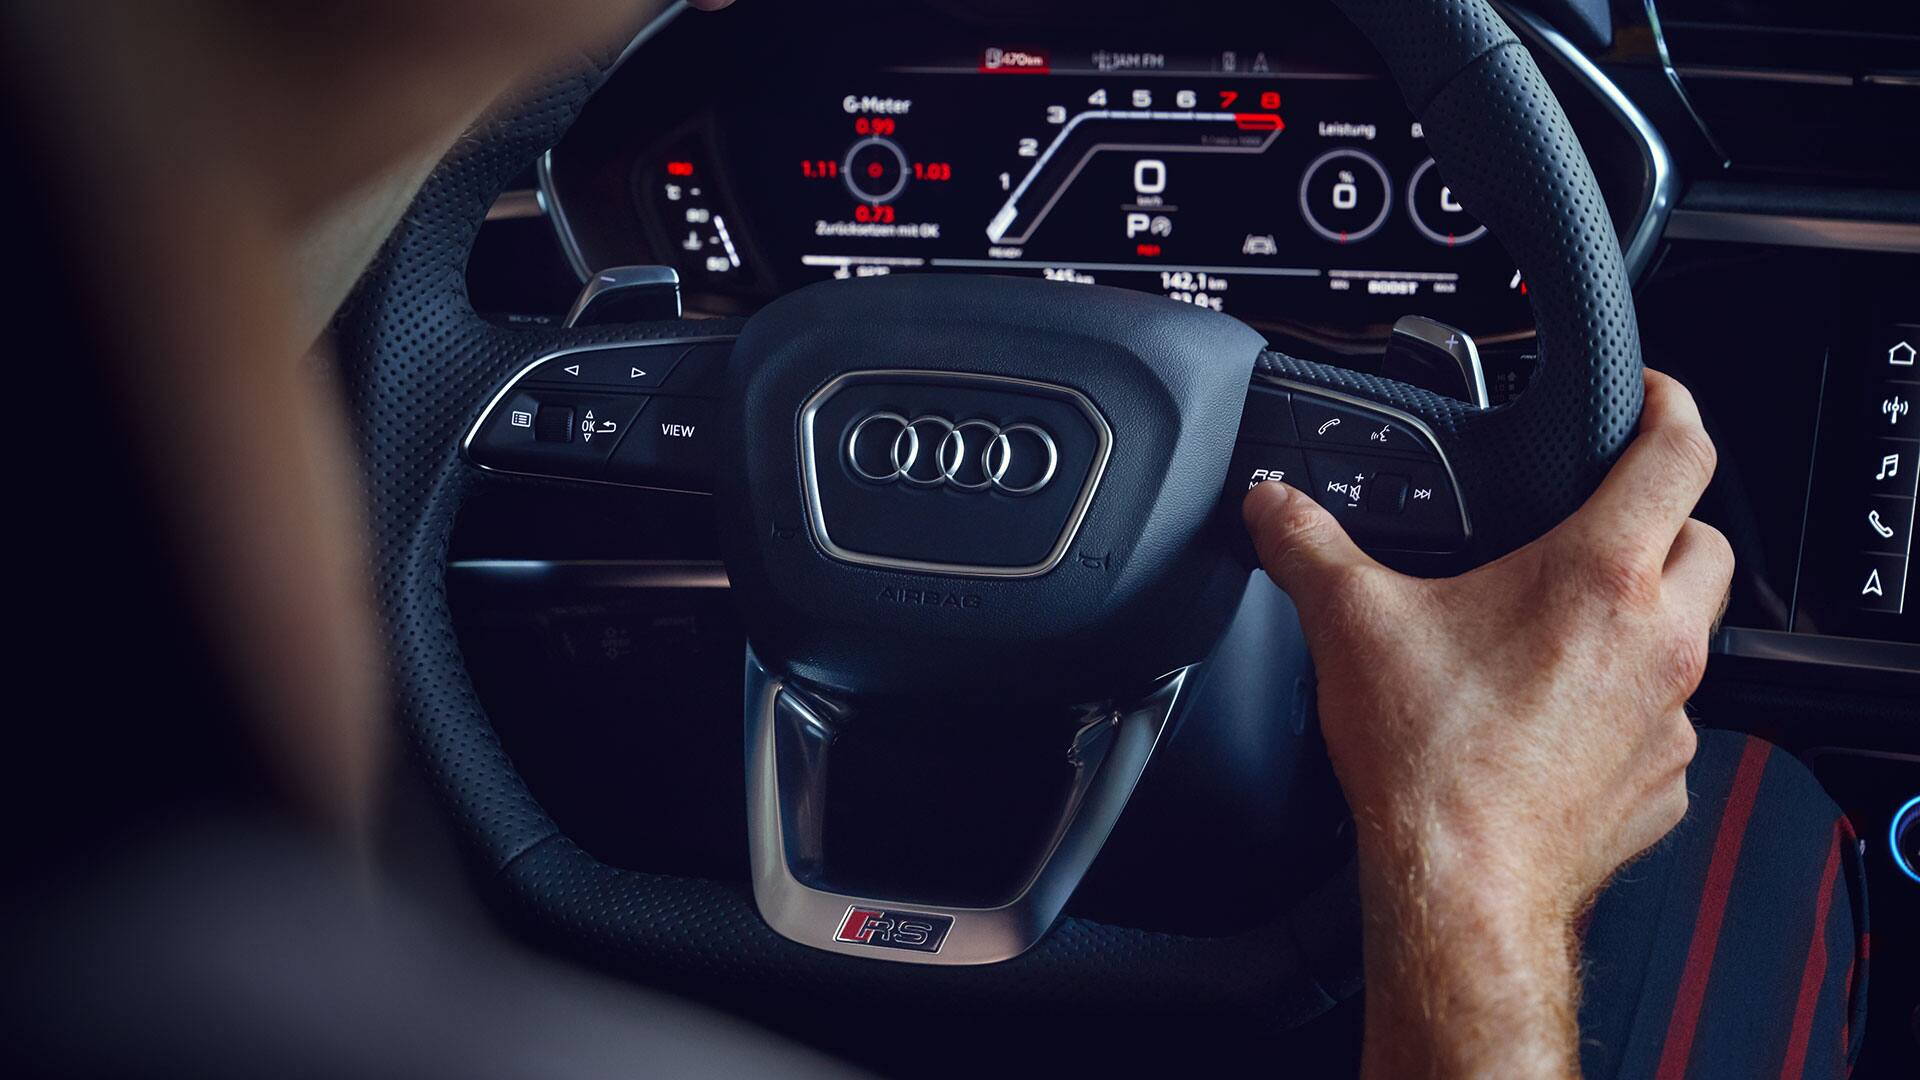 Audi virtual cockpit im Audi RS Q3 Sportback